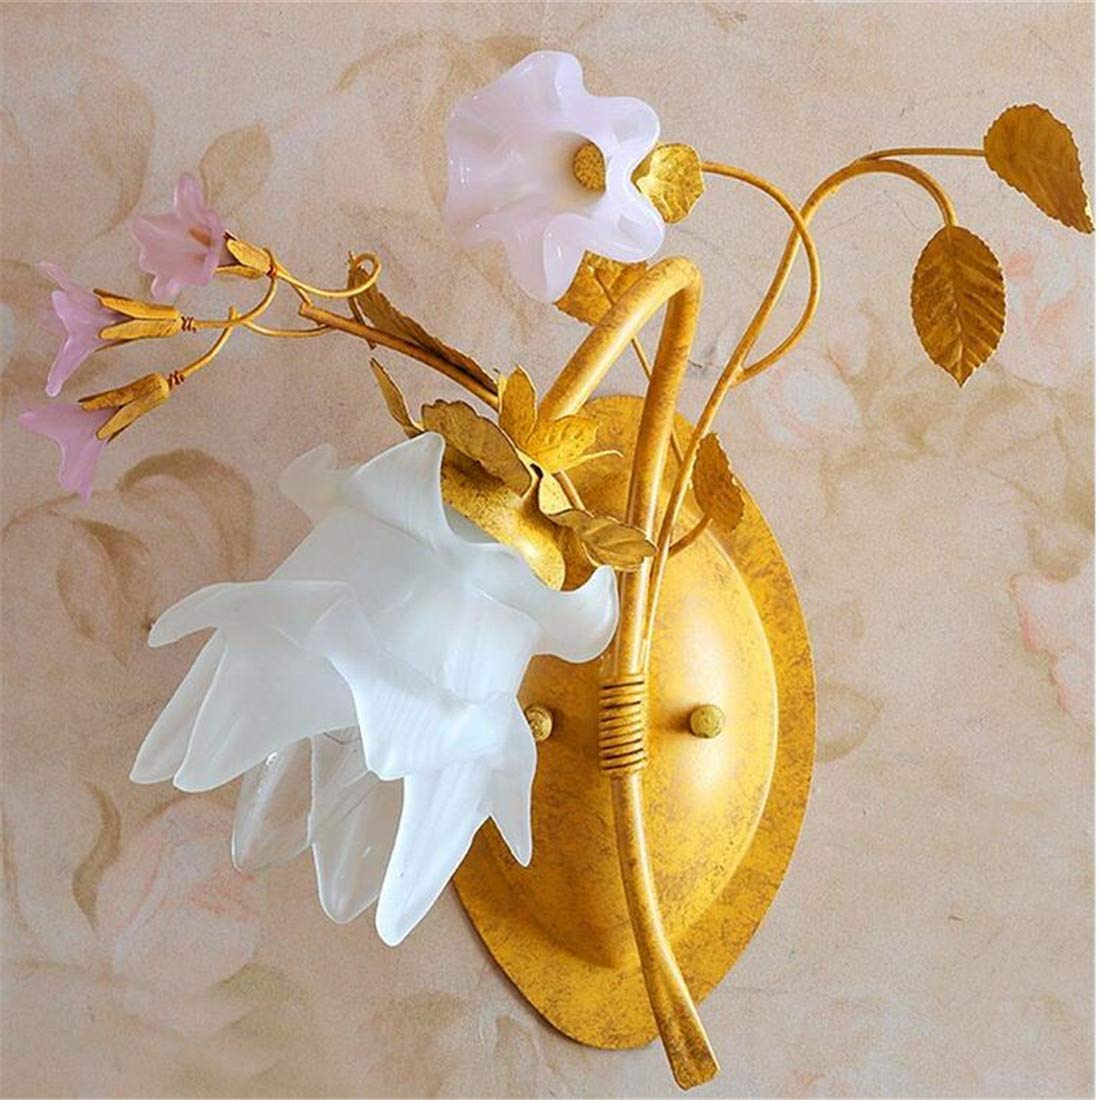 Vintage Chandelierwrought-Iron Balcony Country Style Wall Light Floral Decoration Staircase Small Wall Lamp, Left Toward The Optical Source (3W Led Bulb)